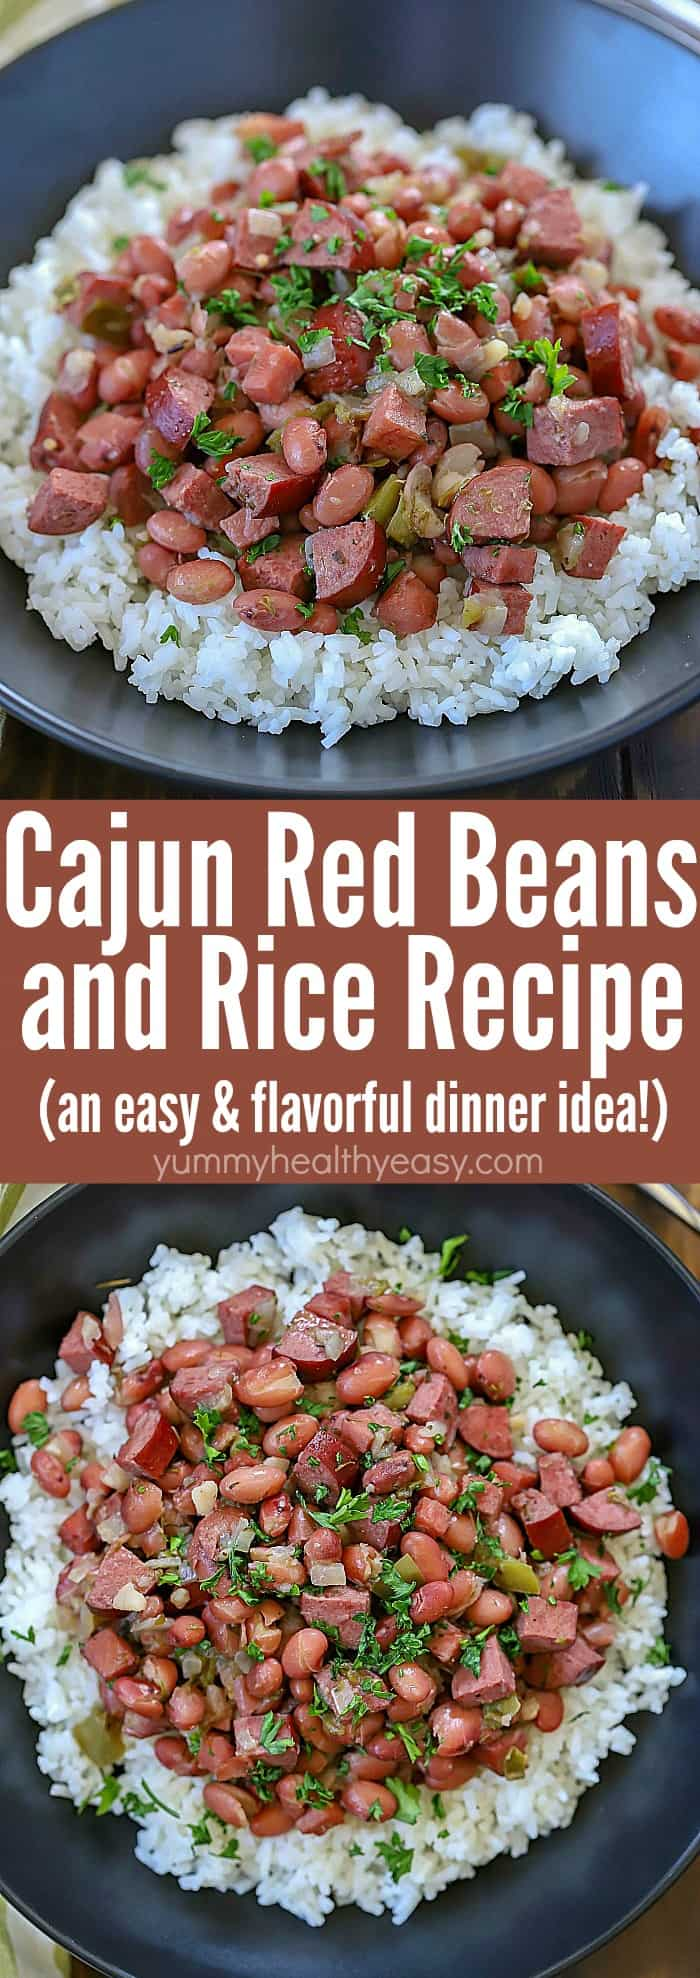 Spice your dinner up tonight and make this Cajun Red Beans and Rice Recipe! Slow cook beans, ham, turkey sausage and spices in a skillet to let the flavors combine. Serve over rice for a delicious dinner the whole family will fall in love with! #beans #rice #recipe #easy #dinnerrecipe #ham #sausage #redbeans #slowcooked via @jennikolaus